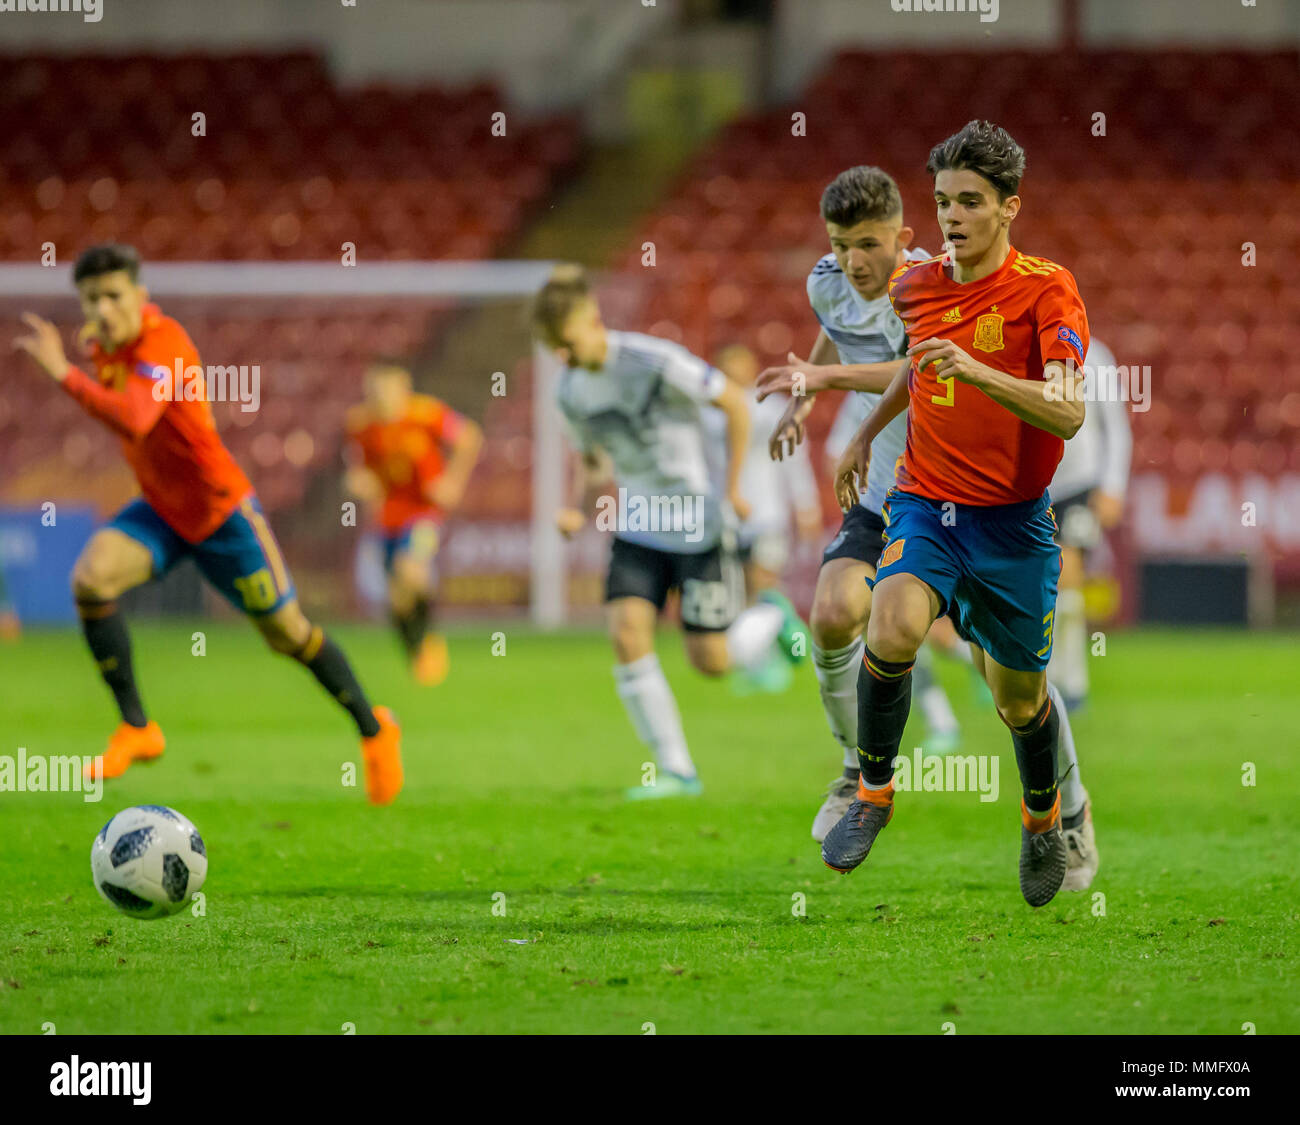 11th May Bankss Stadium, Walsall, England; UEFA Under 17 European Championships, Spain versus Germany; Miguel Gutierrez Ortega of Spain chasing the ball down - Stock Image